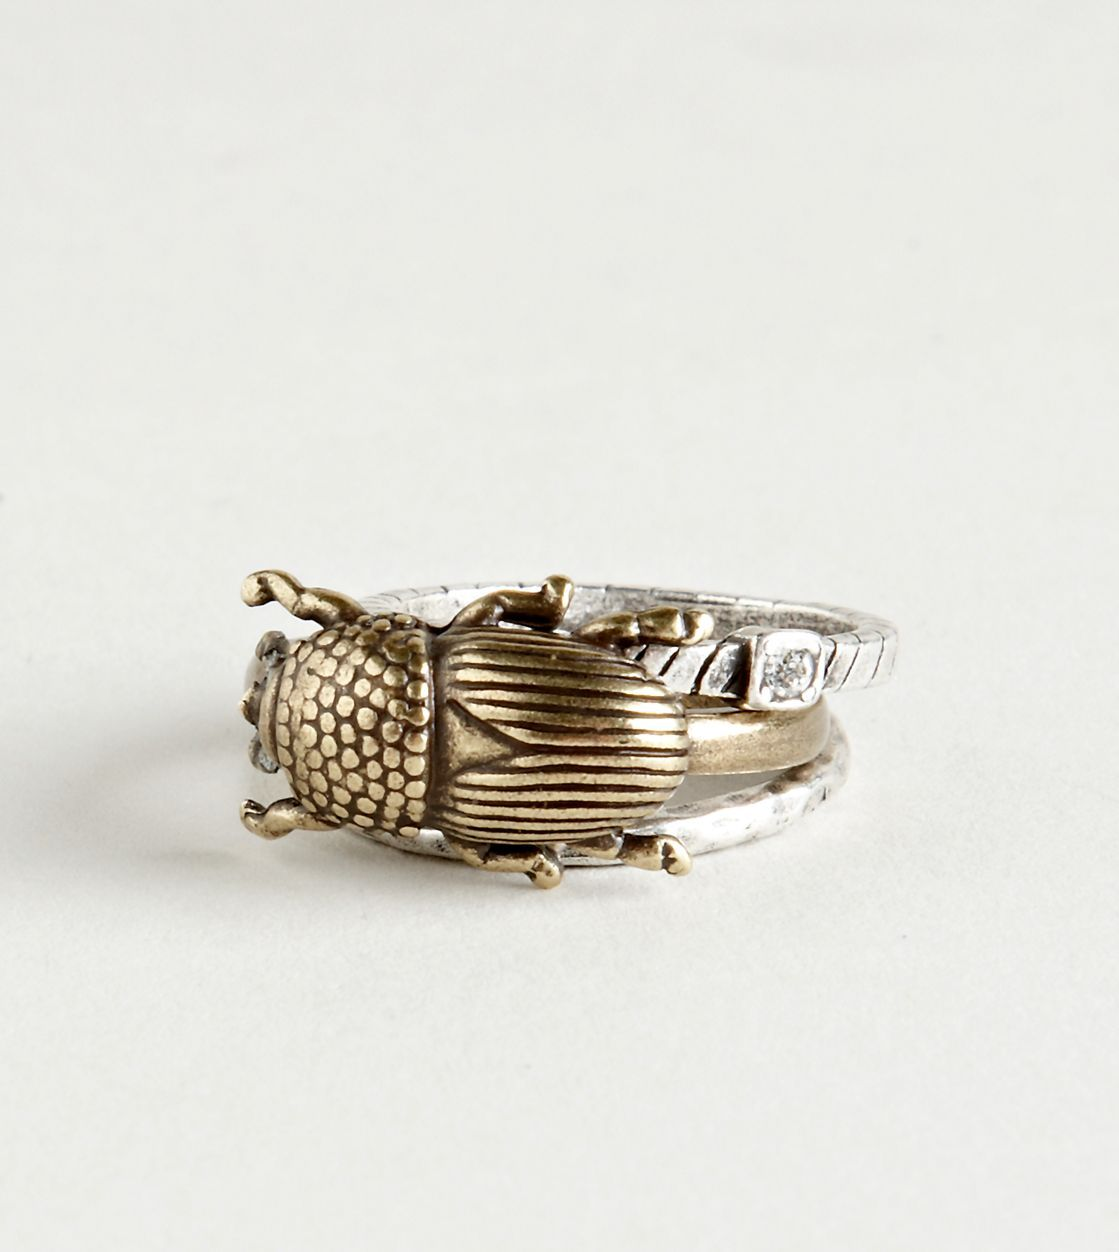 American Eagle has a couple rad pieces of jewelry at the moment. $15.50